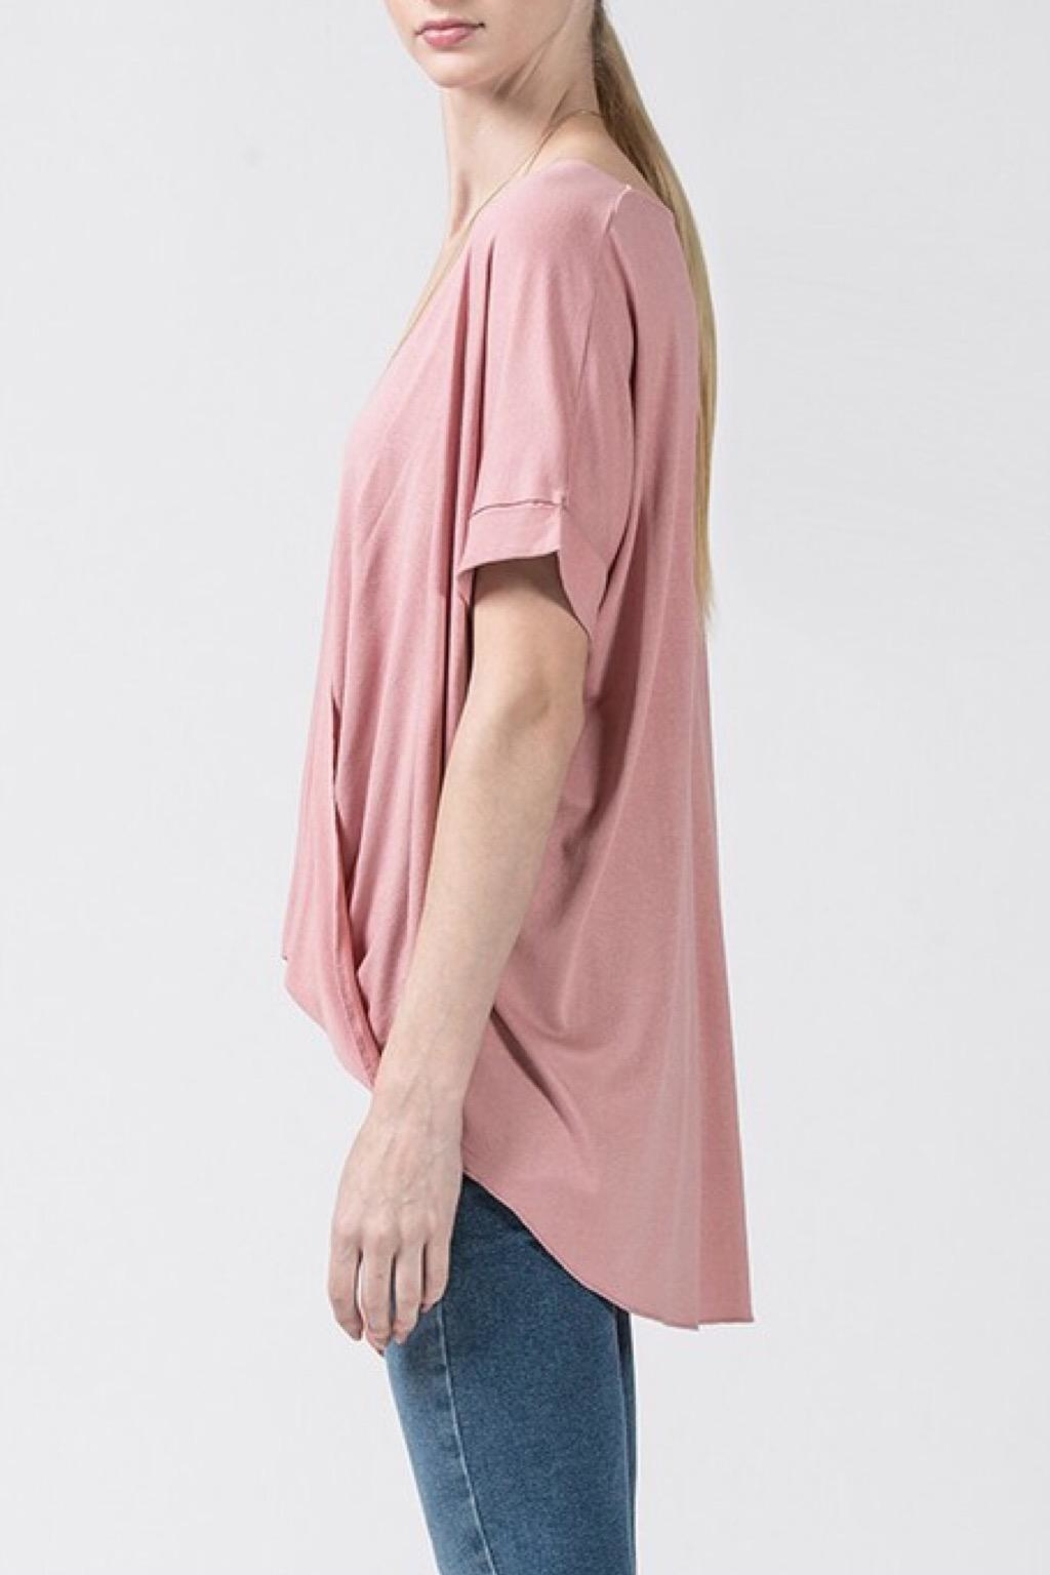 Double Zero Mauve Casual Top - Front Full Image